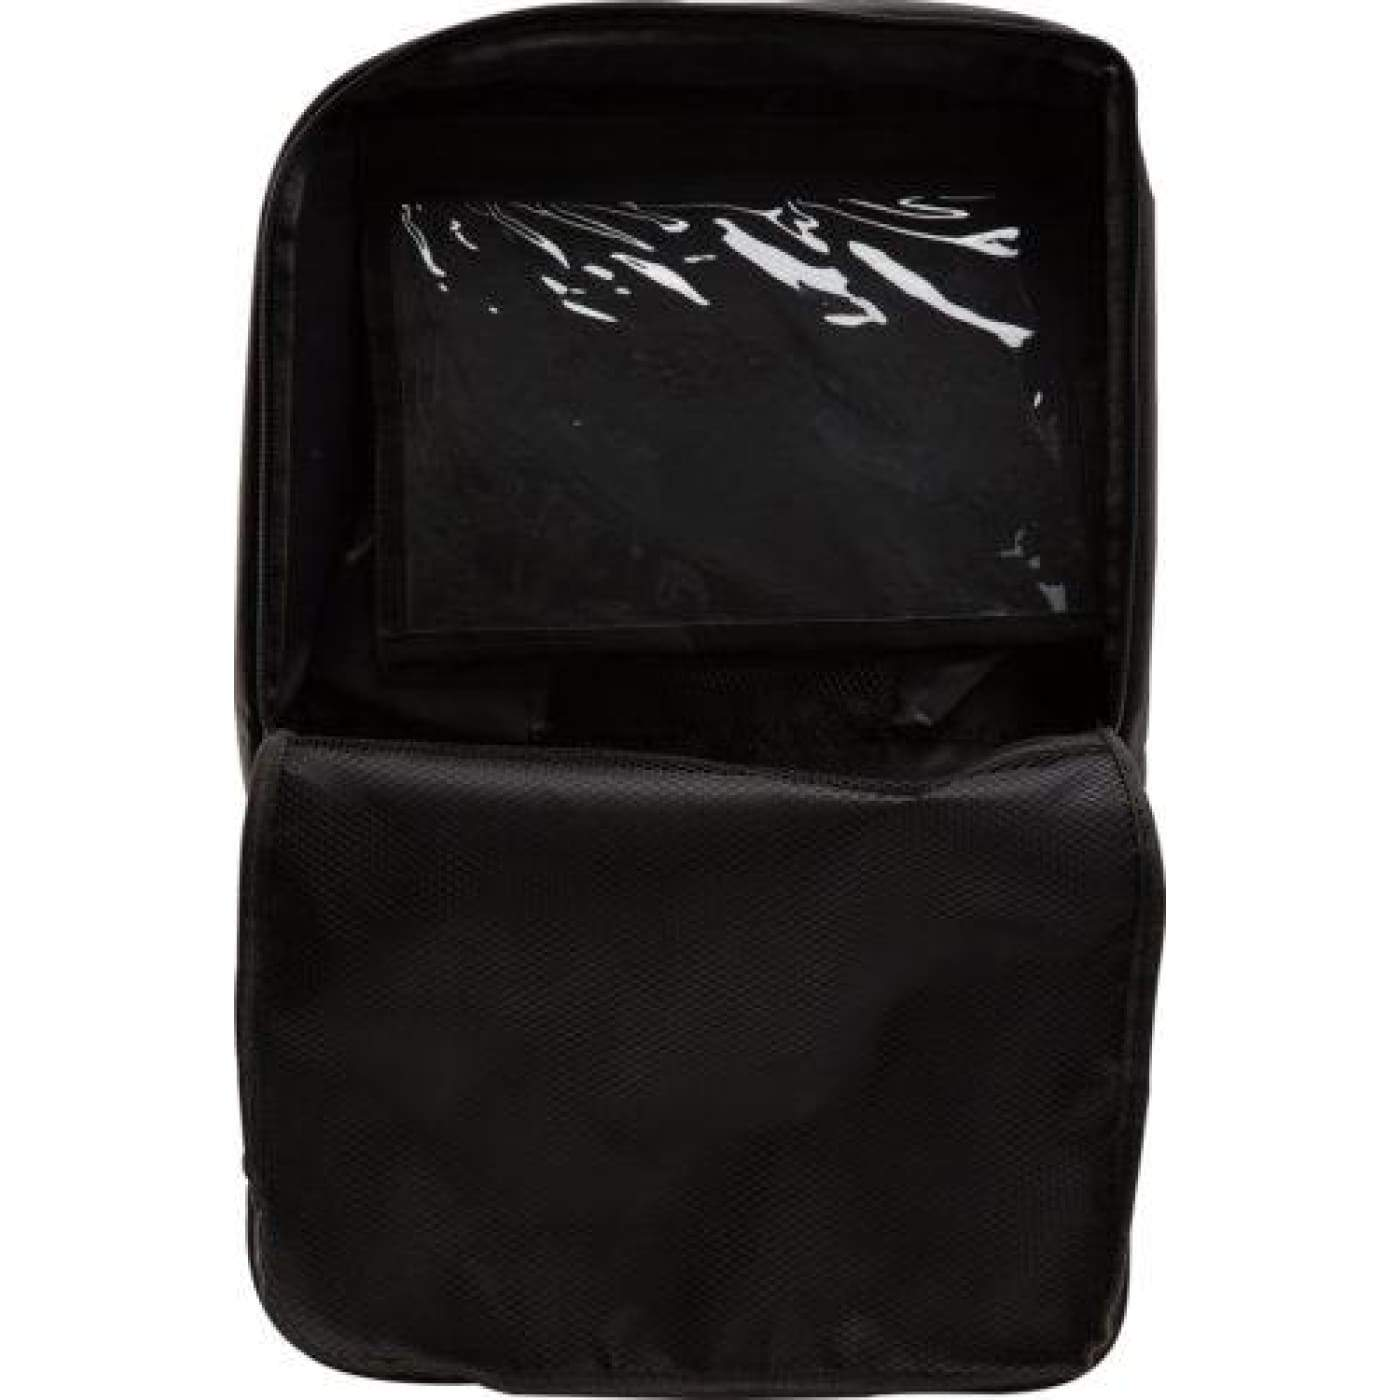 InfaSecure Zip Up Organiser with Tablet Holder - CAR SEATS - SEAT PROTECTORS/MIRRORS/STORAGE